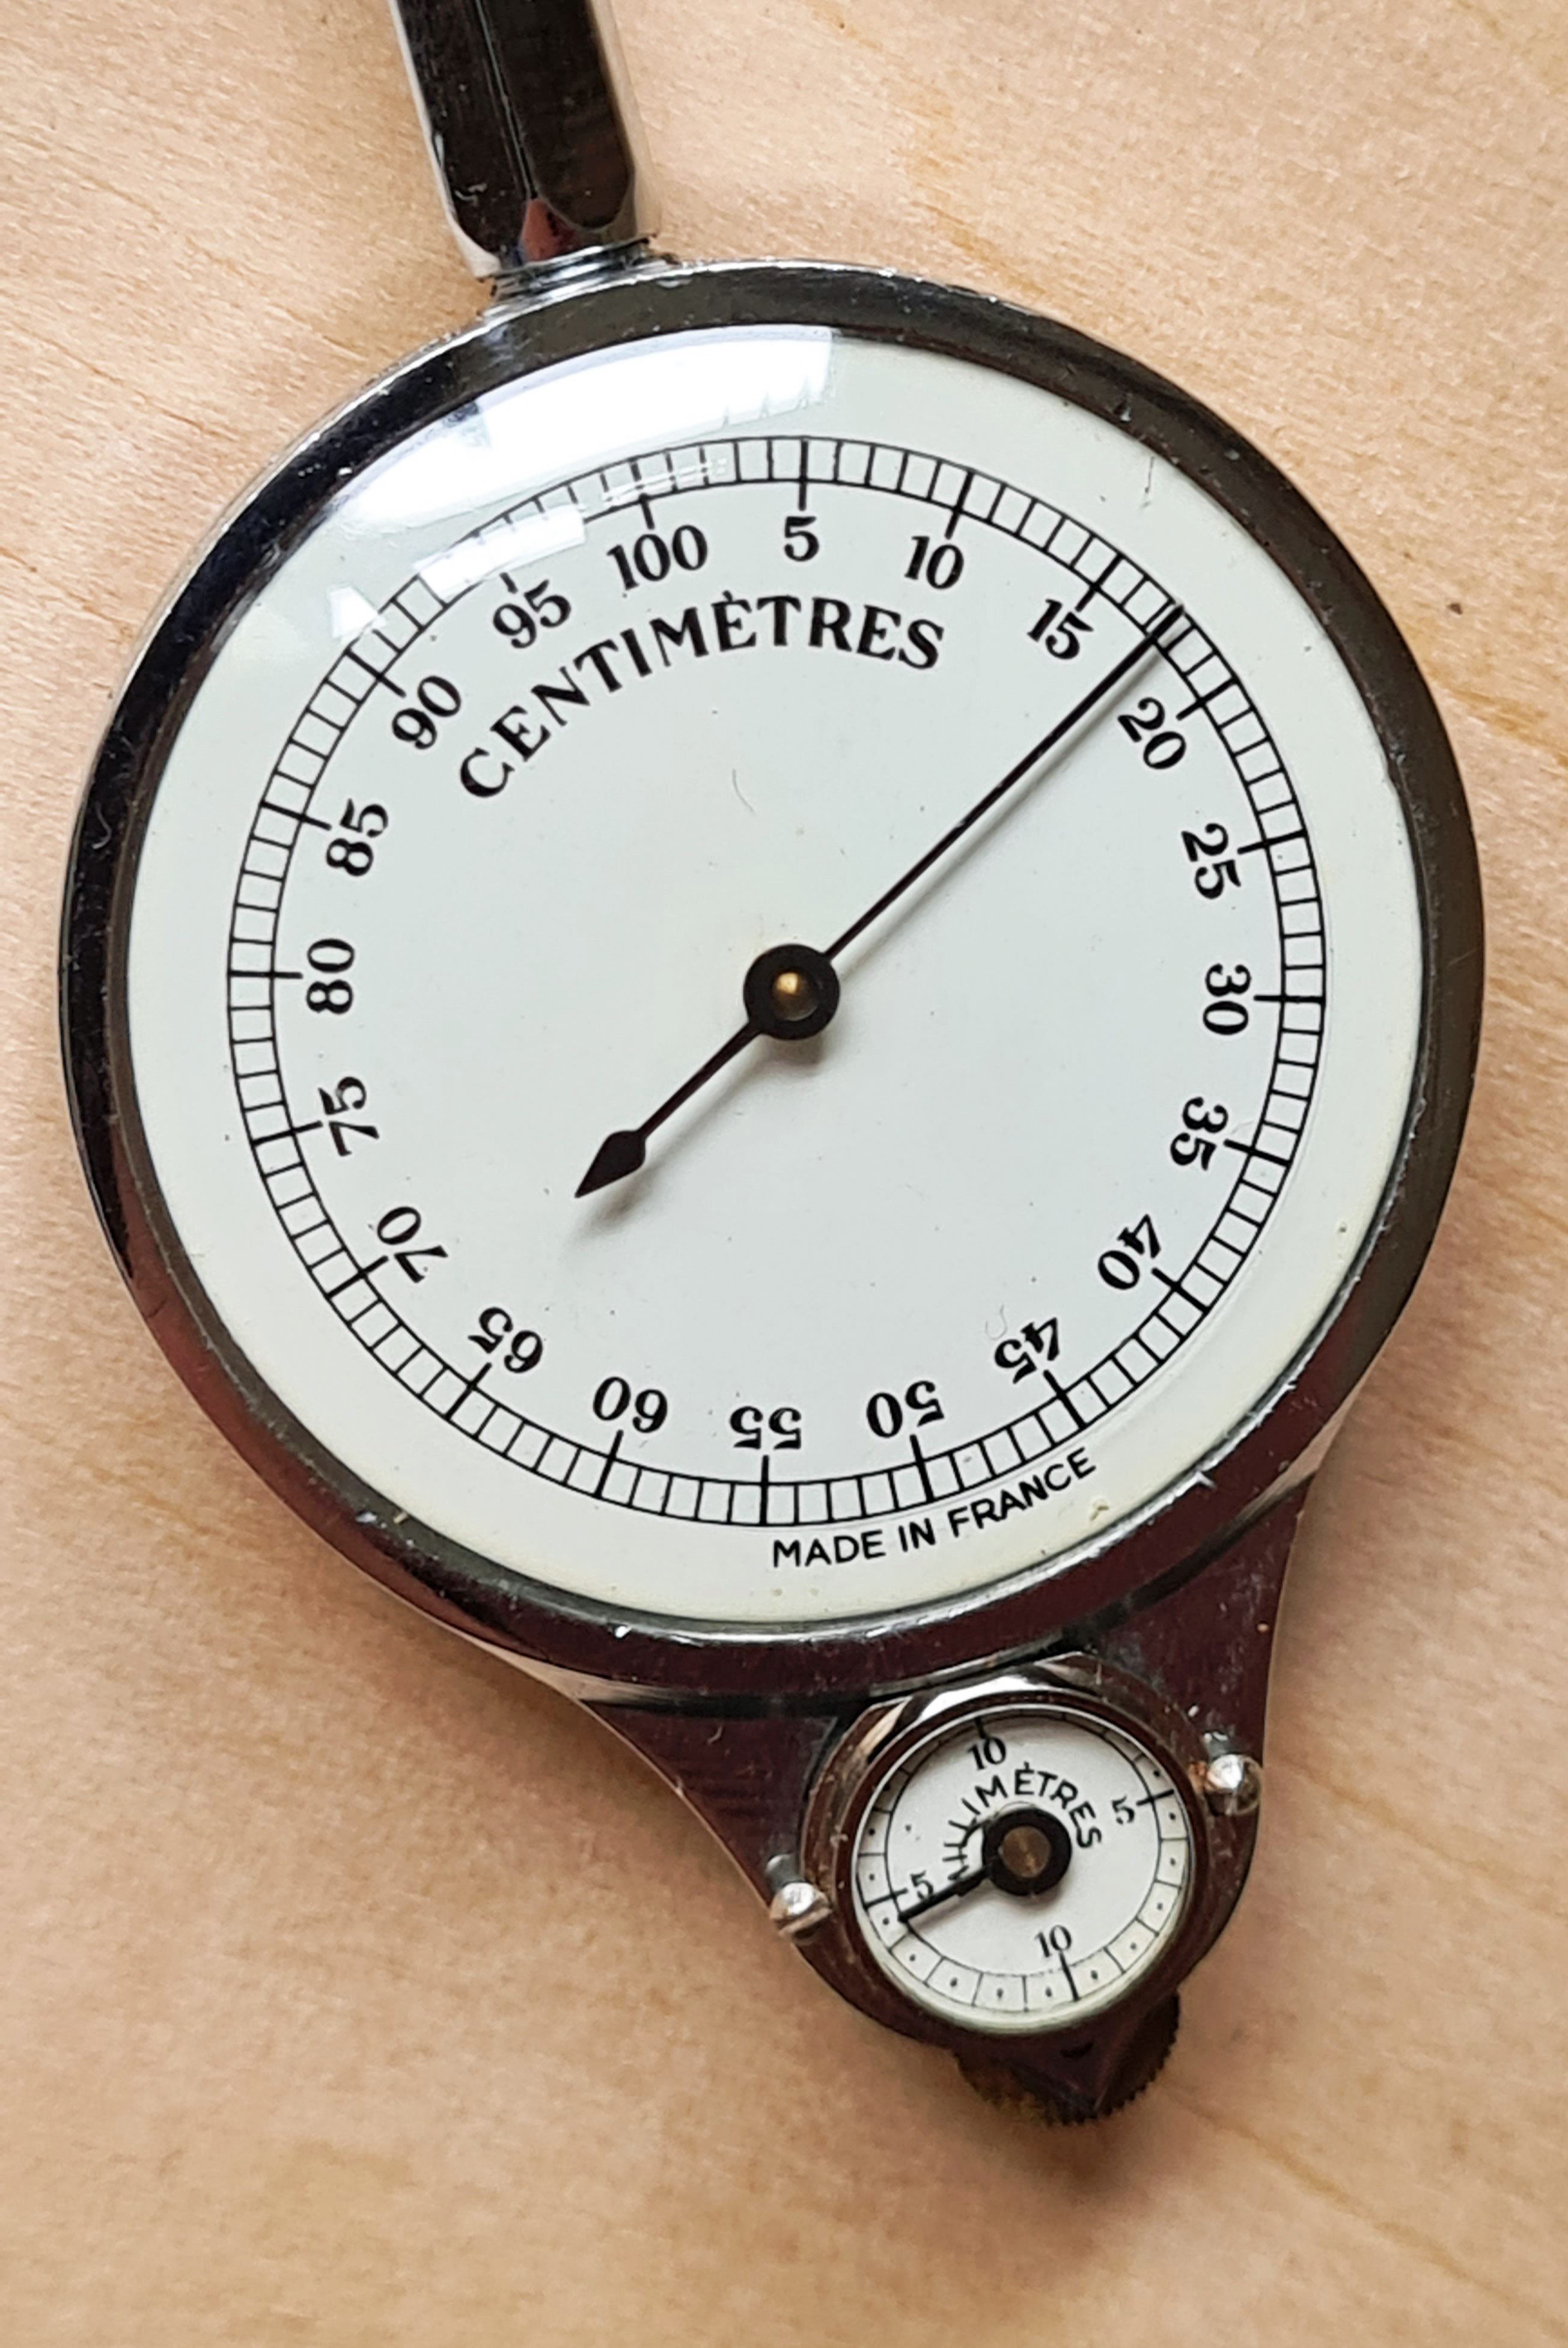 The two dials on model 54M